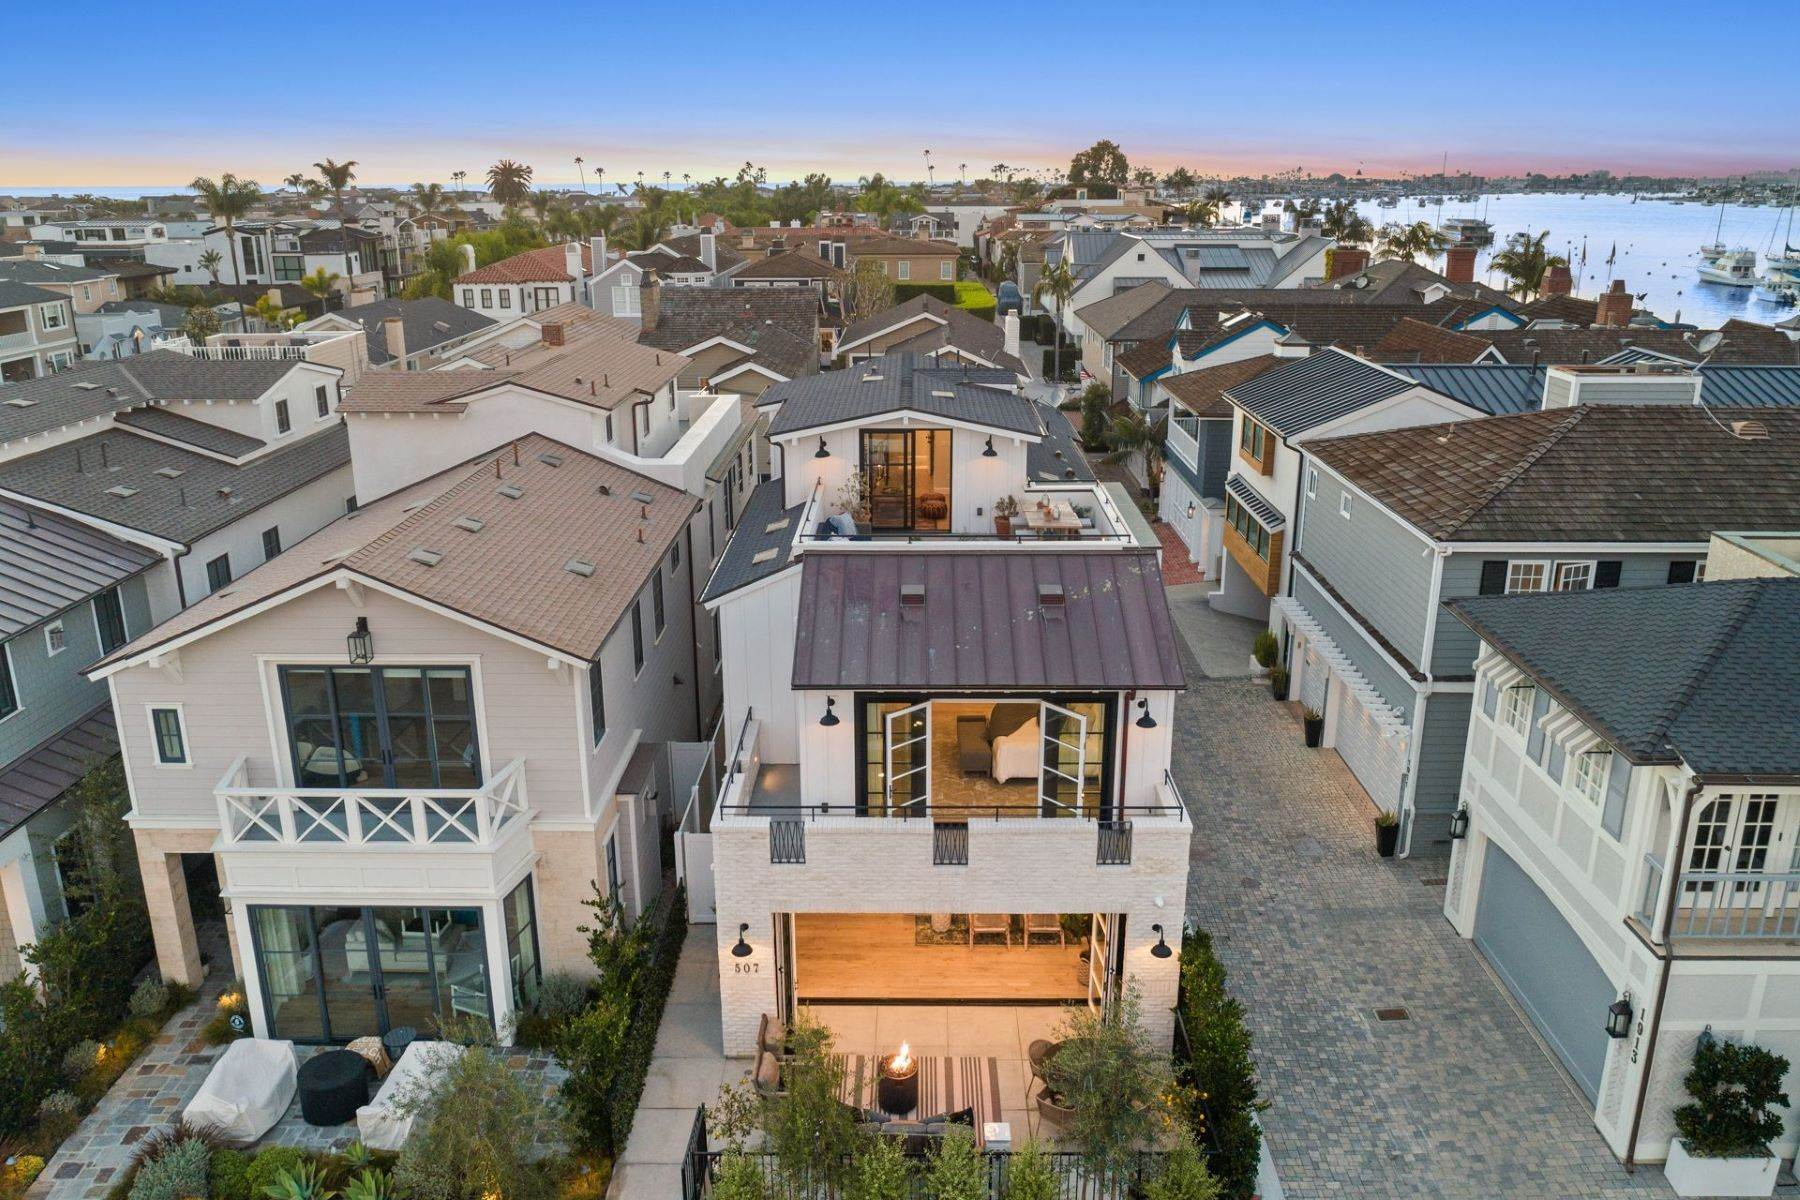 Single Family Homes for Sale at 507 L Street Newport Beach, California 92661 United States